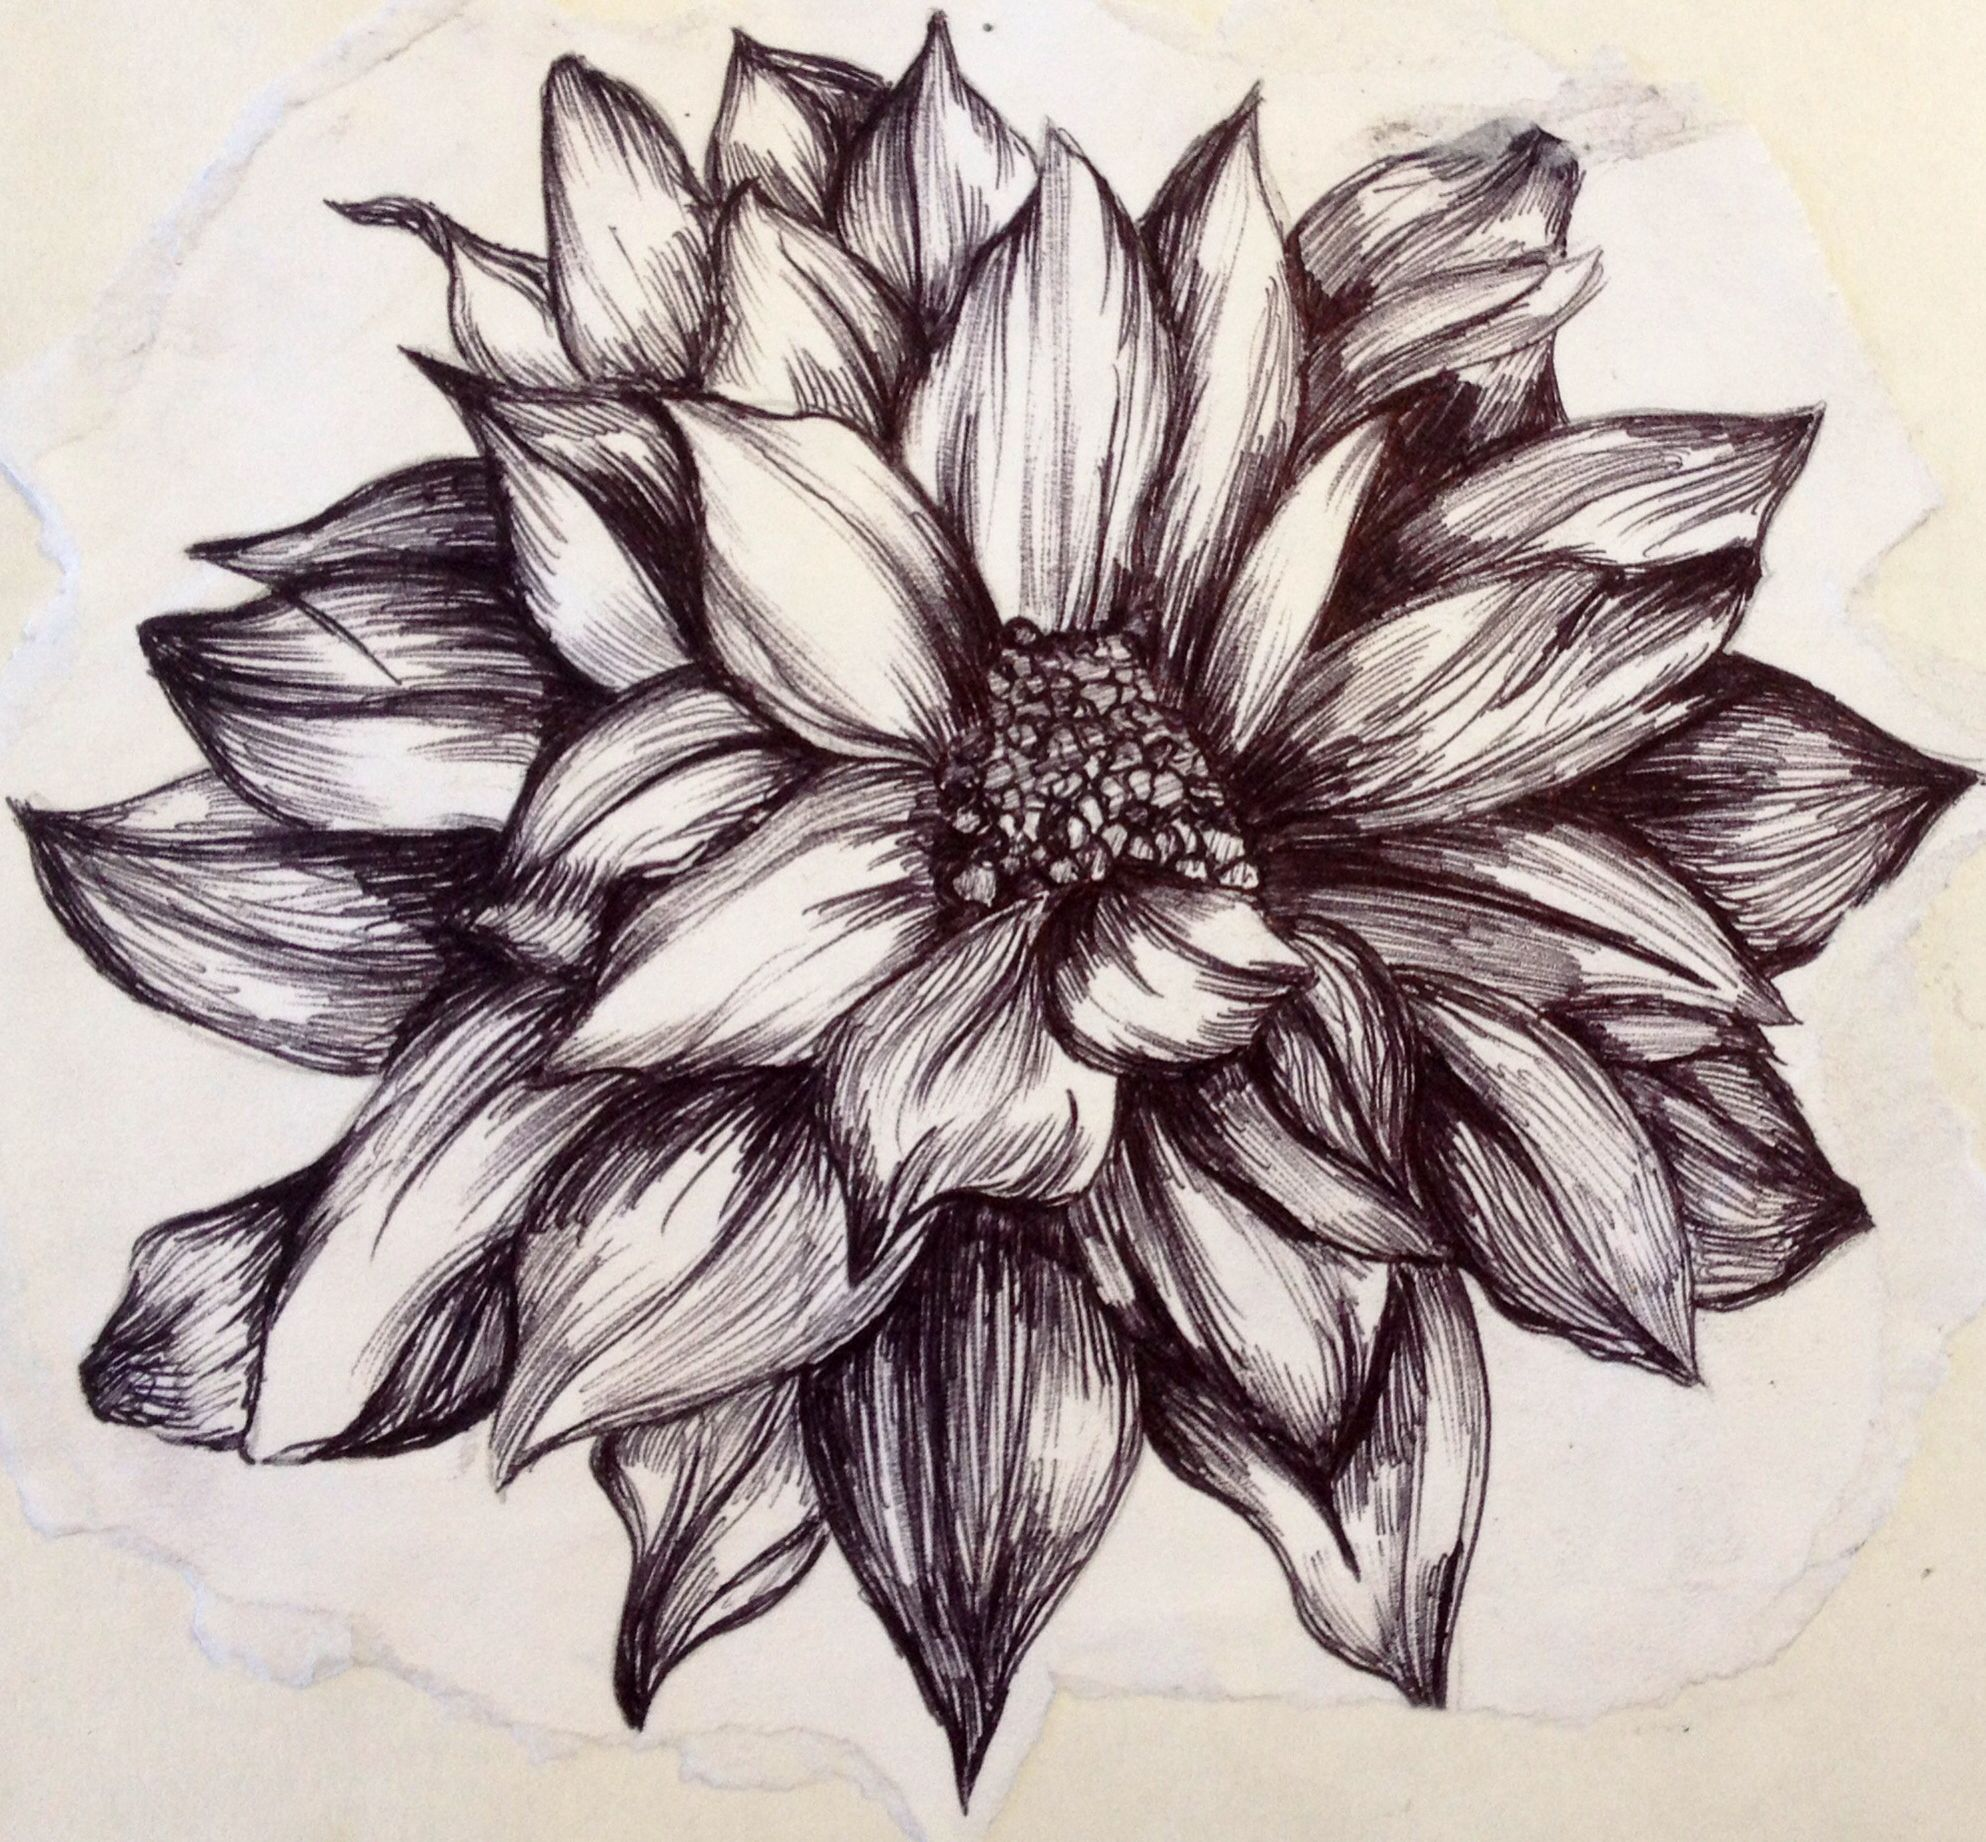 Flower illustration created with biro black pen pen